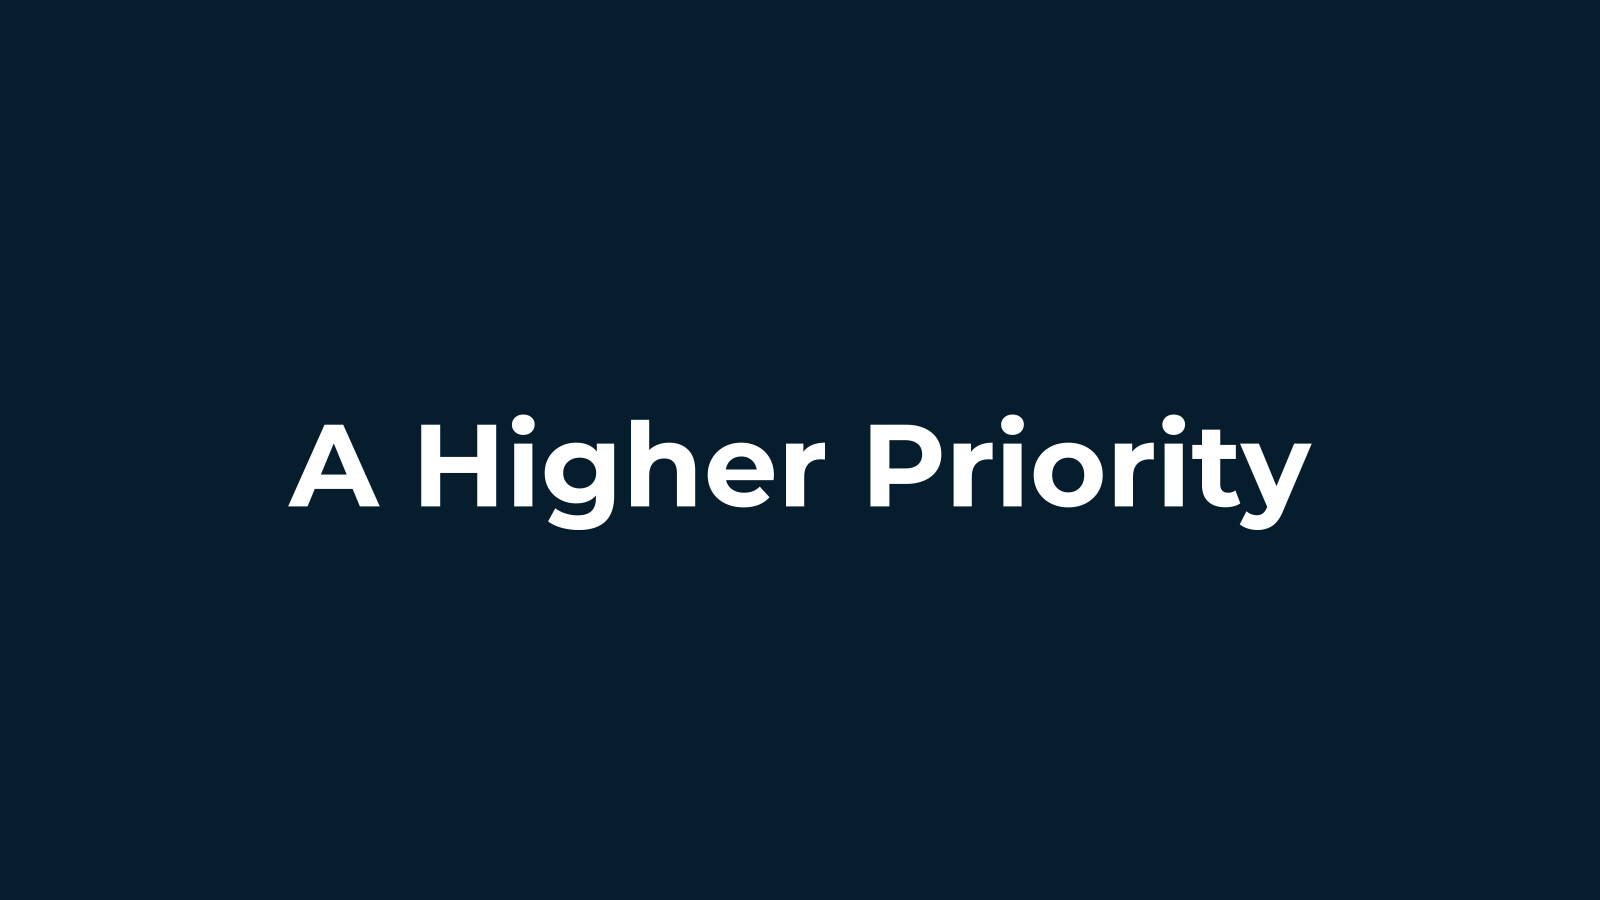 A Higher Priority